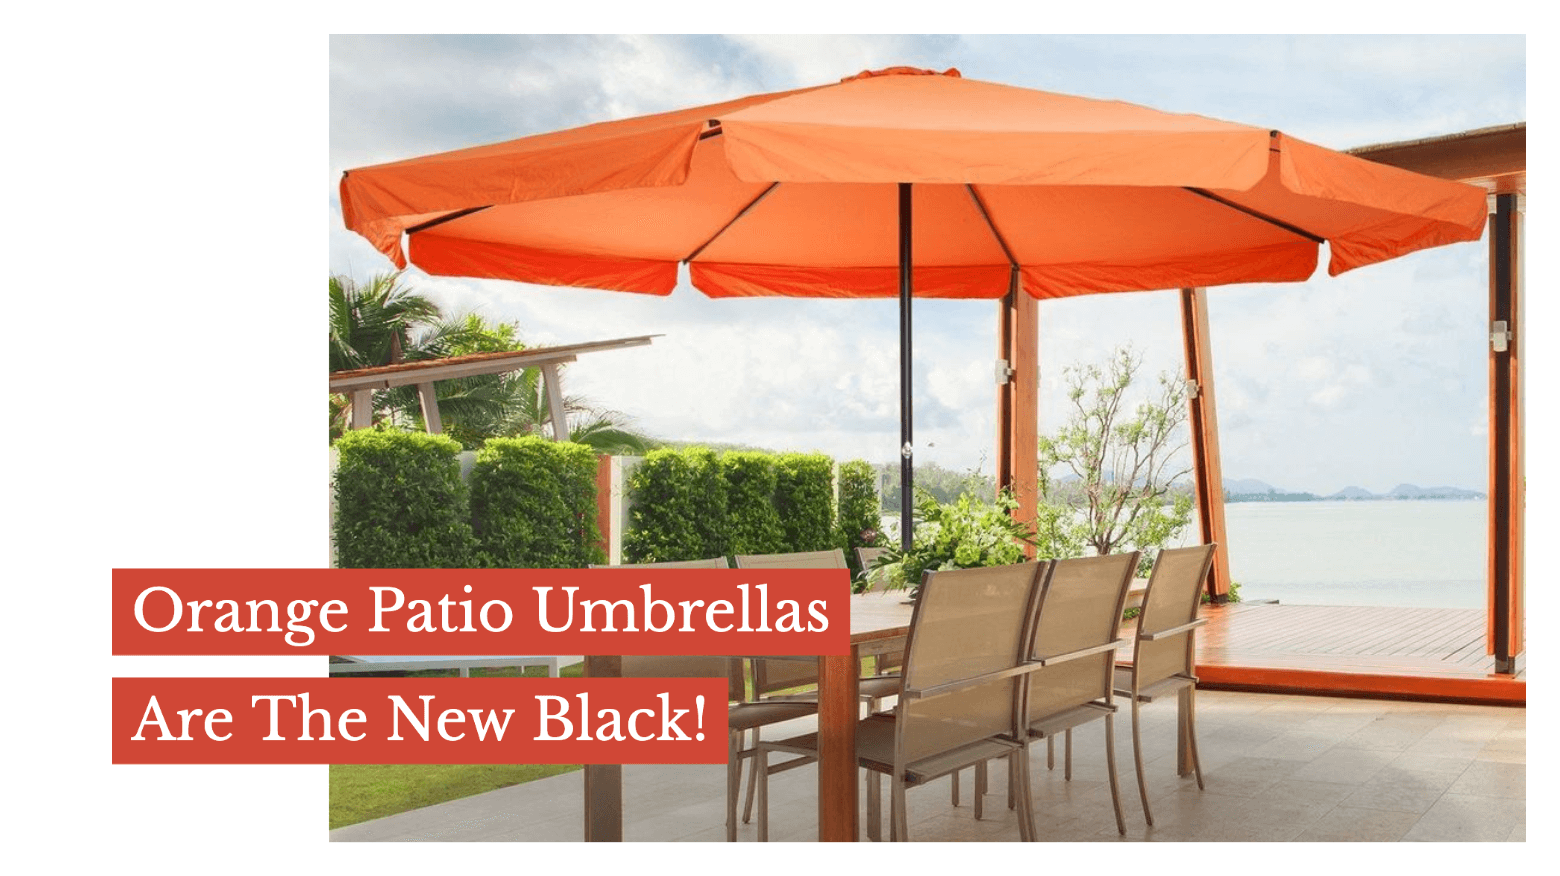 Orange Patio Umbrellas Are The New Black!